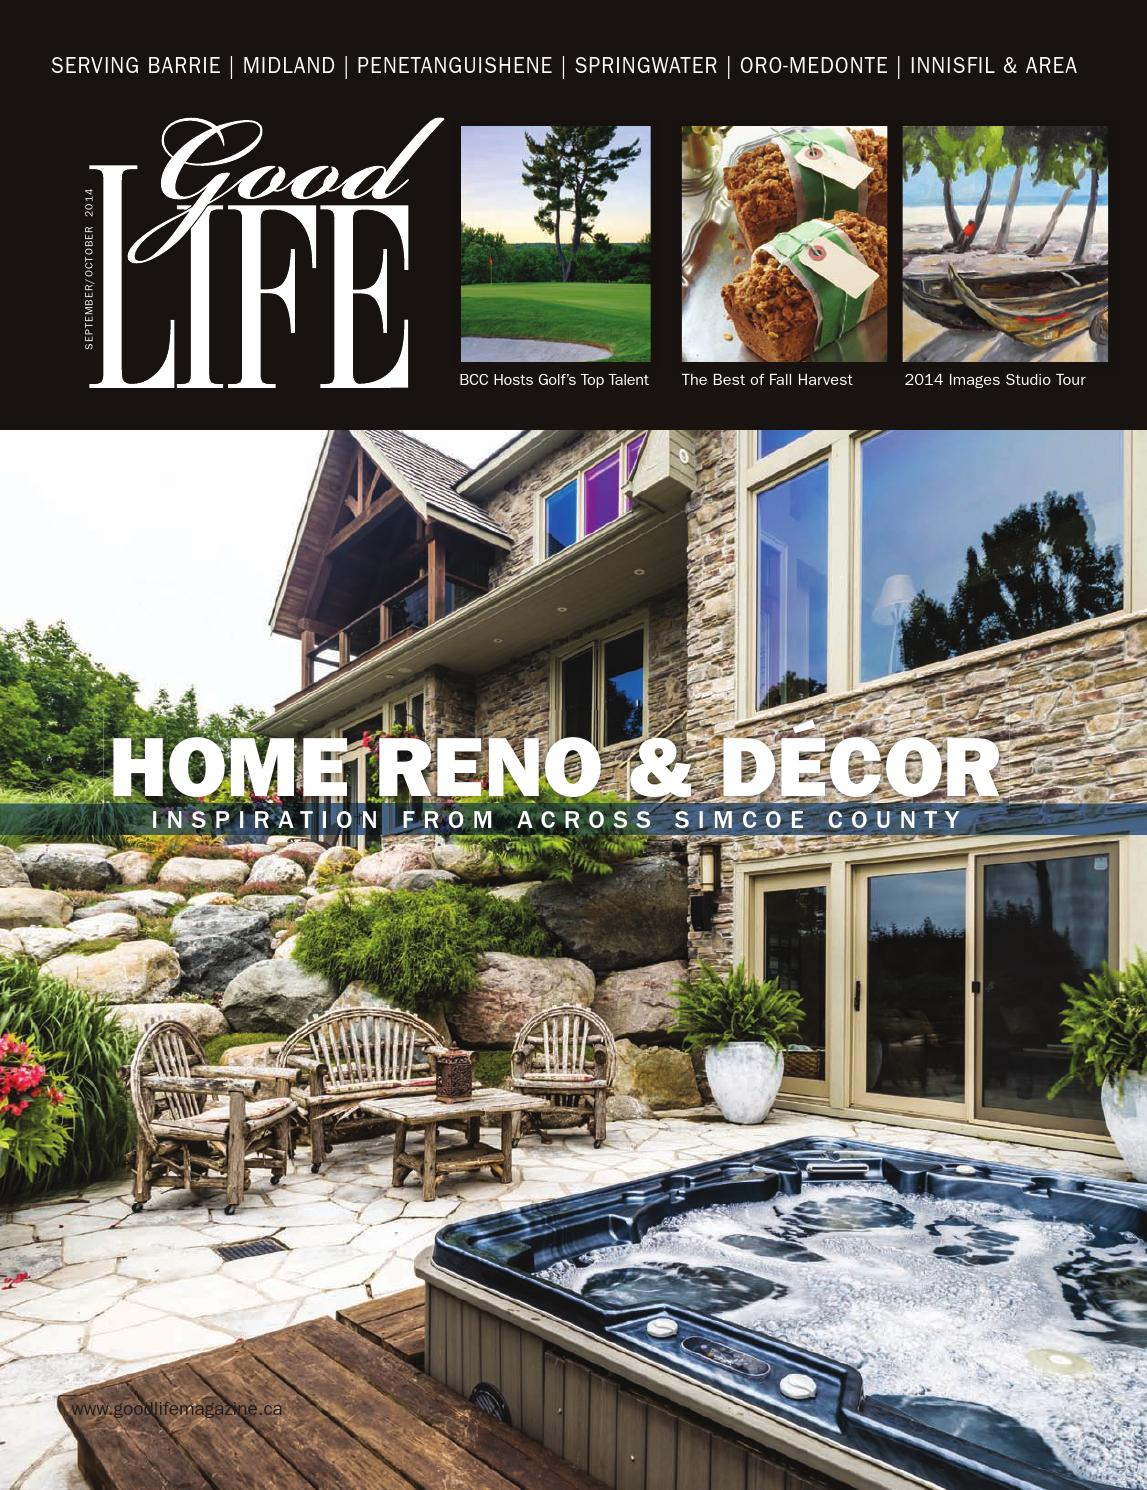 GoodLife Barrie September/October 2014 by GoodLife Magazine - Simcoe County  - issuu